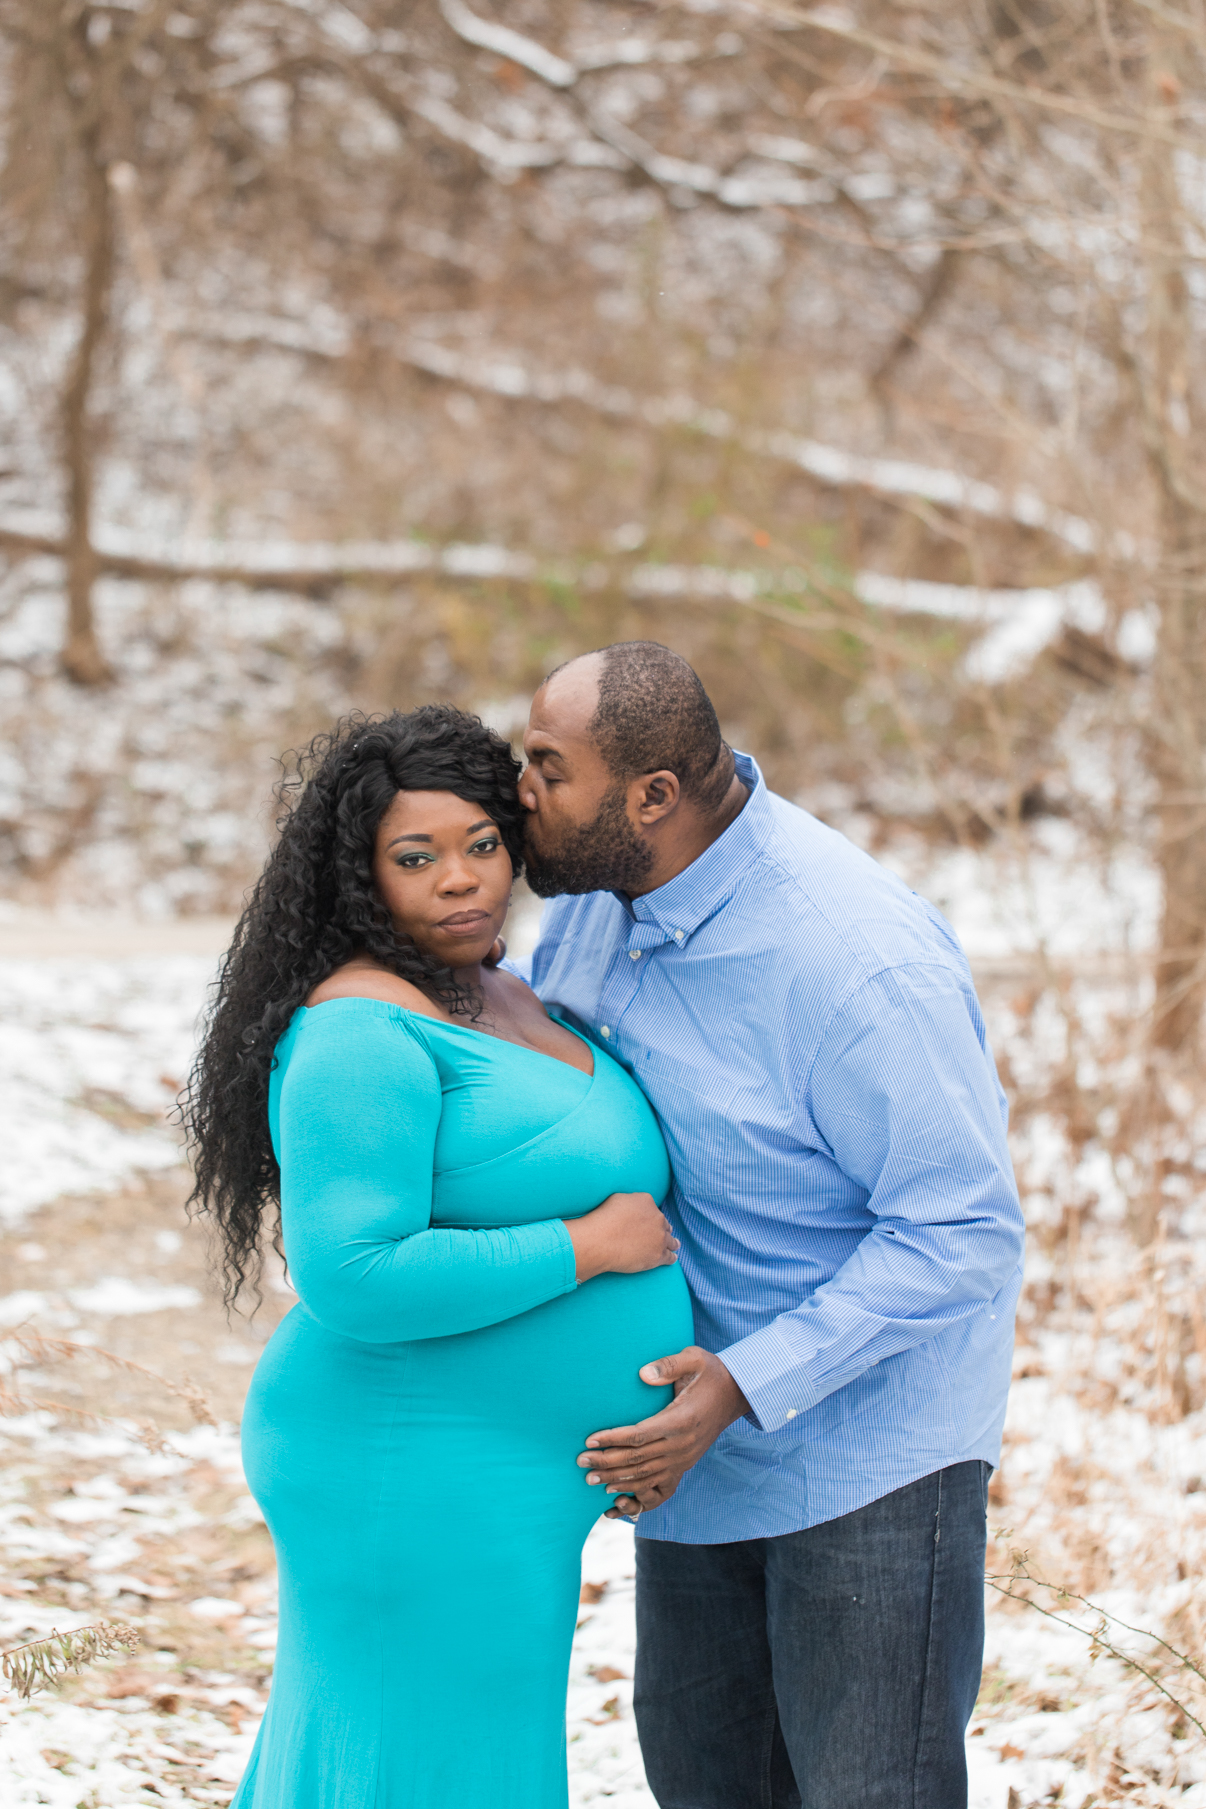 Maternity-Session-Maternity-Photos-Maternity-Pictures-by-Christie_Leigh_Photo-in-Warren-OH-Hermitage-PA-Youngstown-OH-Cortland-OH-Buhl-Farm-Park-Millcreek-Metro-Parks-Mosquito-Lake-State-Park-32.JPG